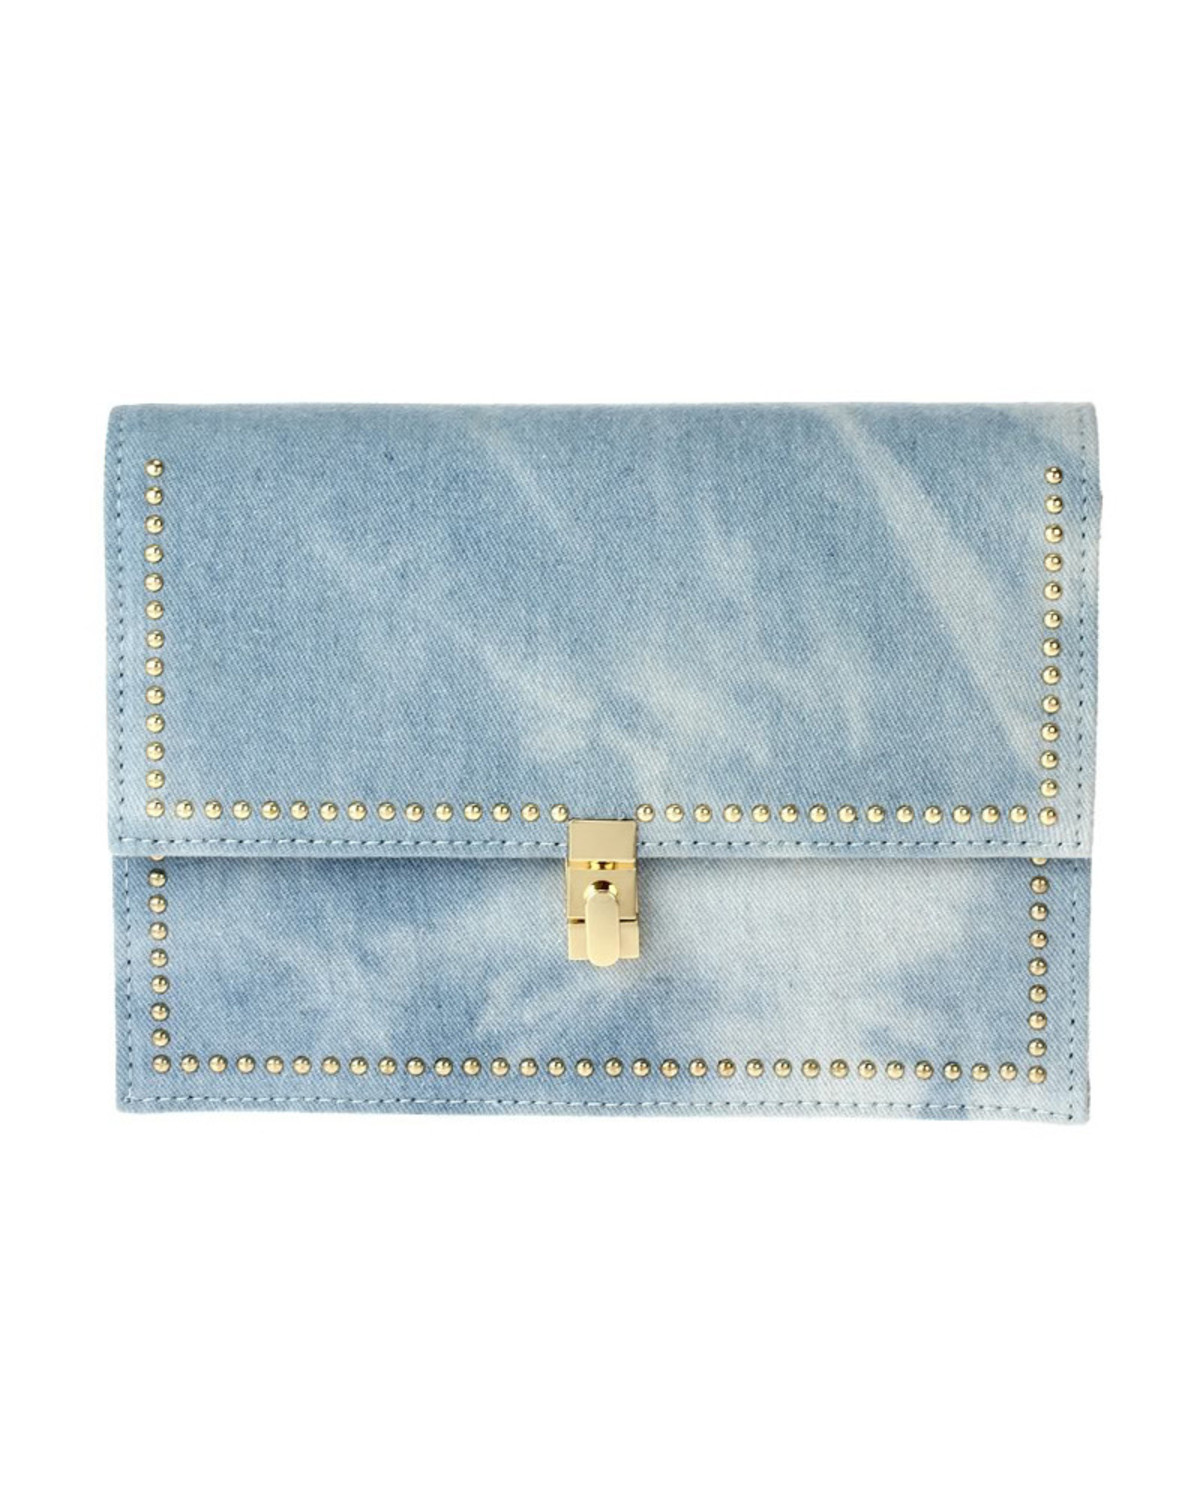 Never Enough Denim Clutch